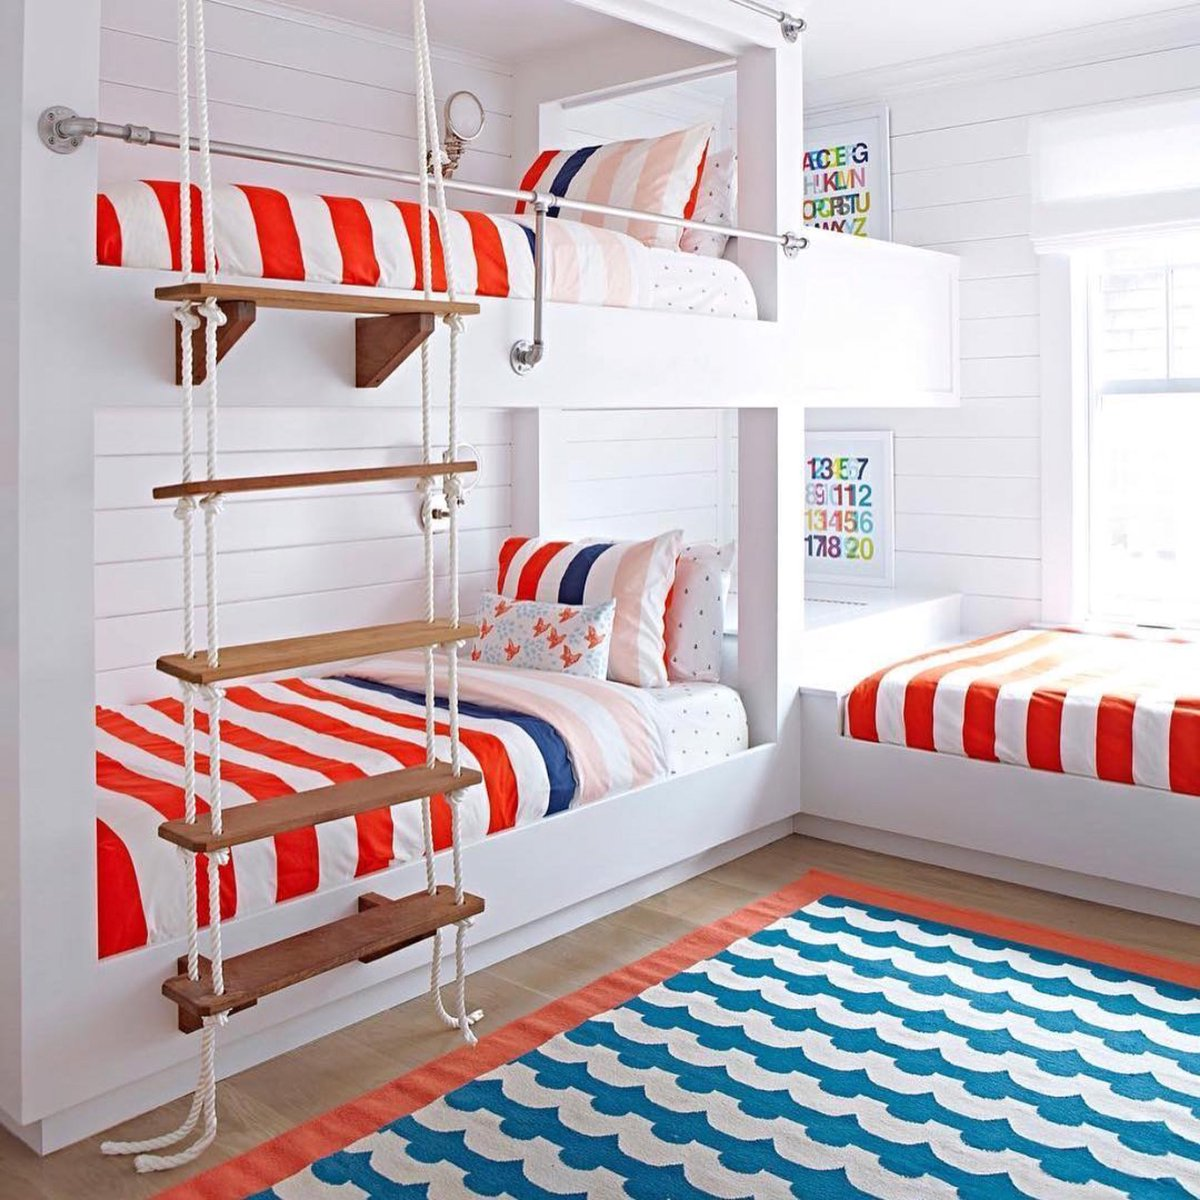 Snooze Bunk Beds Https Instagram P Bqbdluwflvc Tweet Added By Snooze News